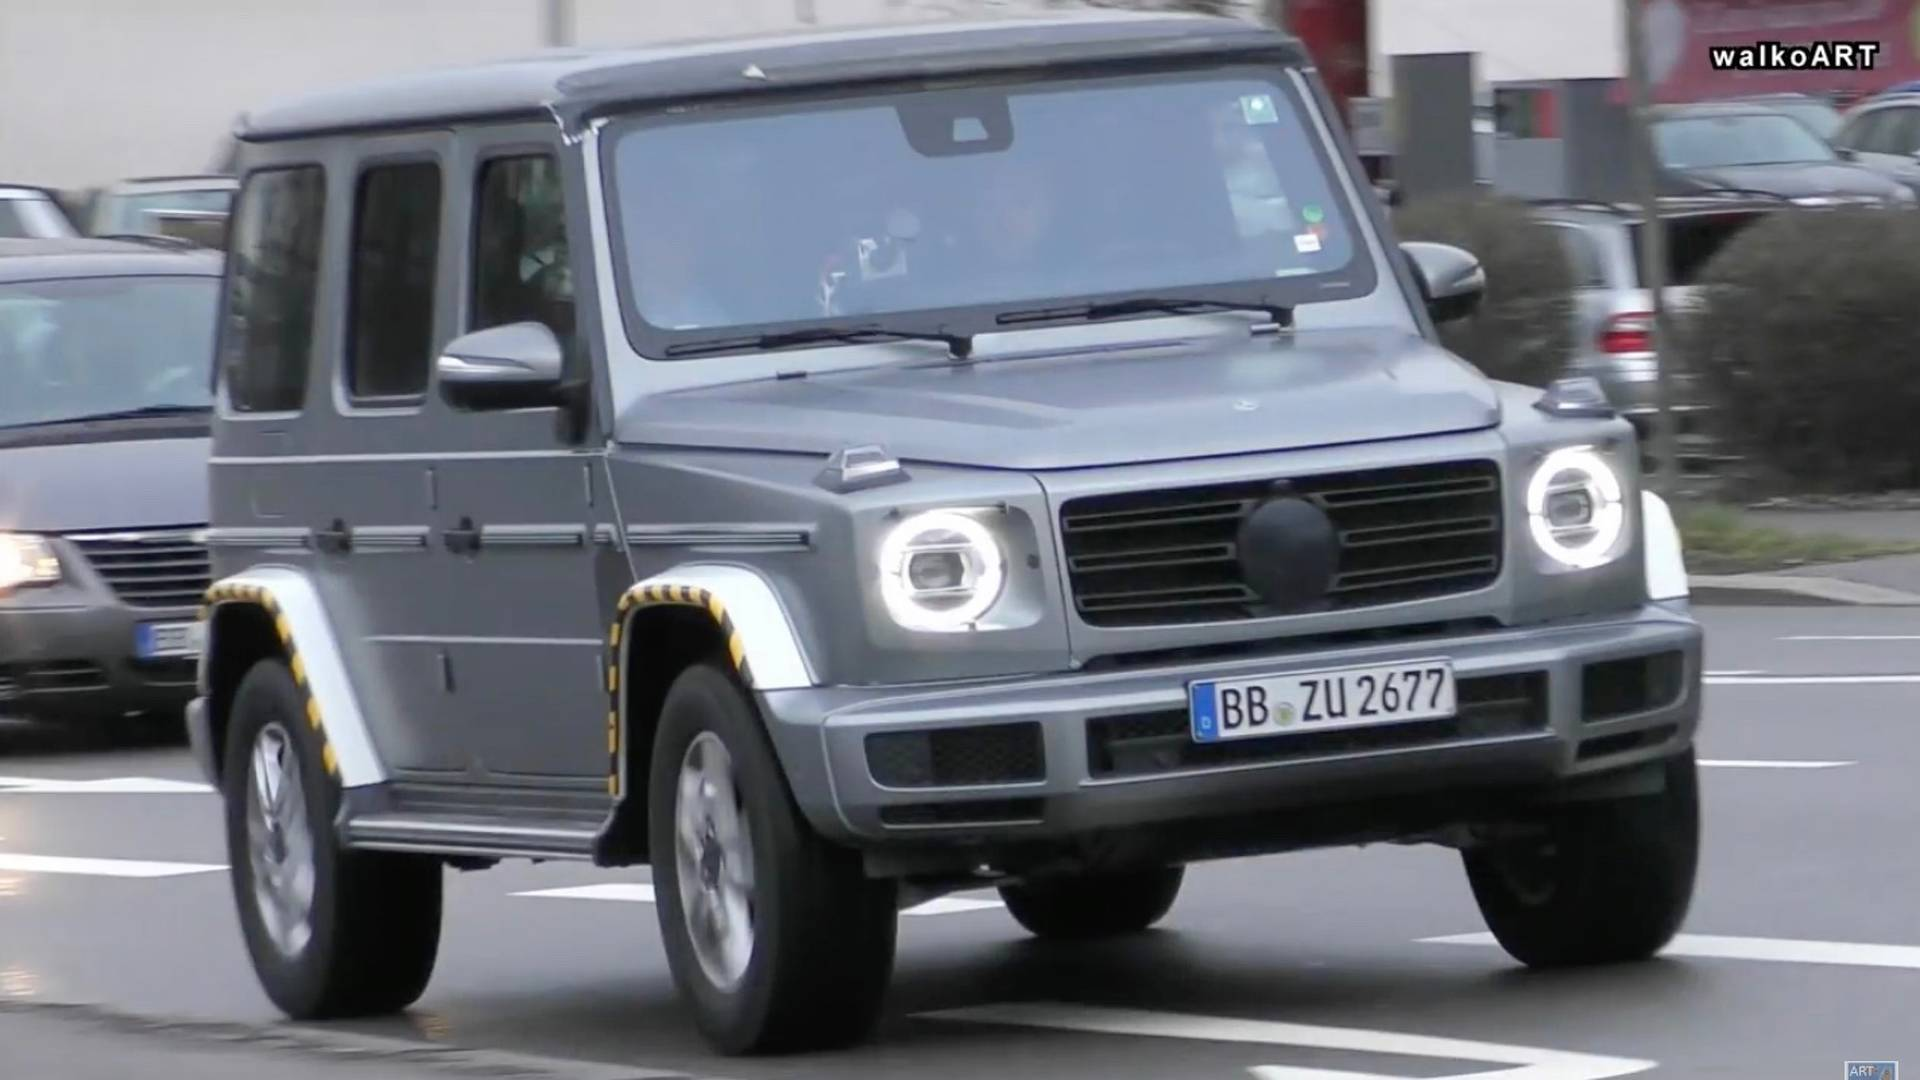 The New Mercedes G Class Looks Imposing The Road